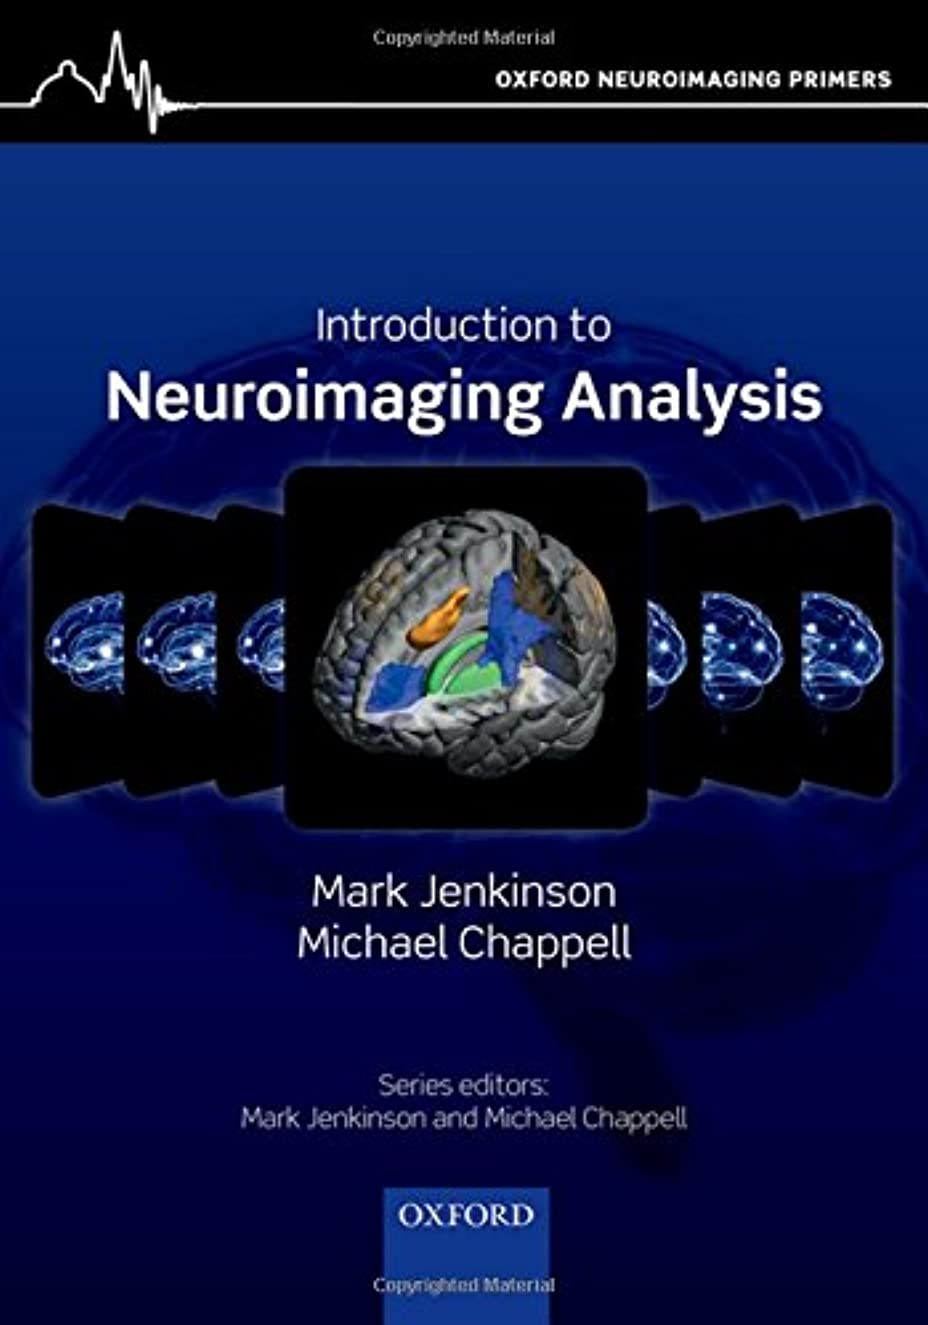 著作権司法スプリットIntroduction to Neuroimaging Analysis (Oxford Neuroimaging Primers)